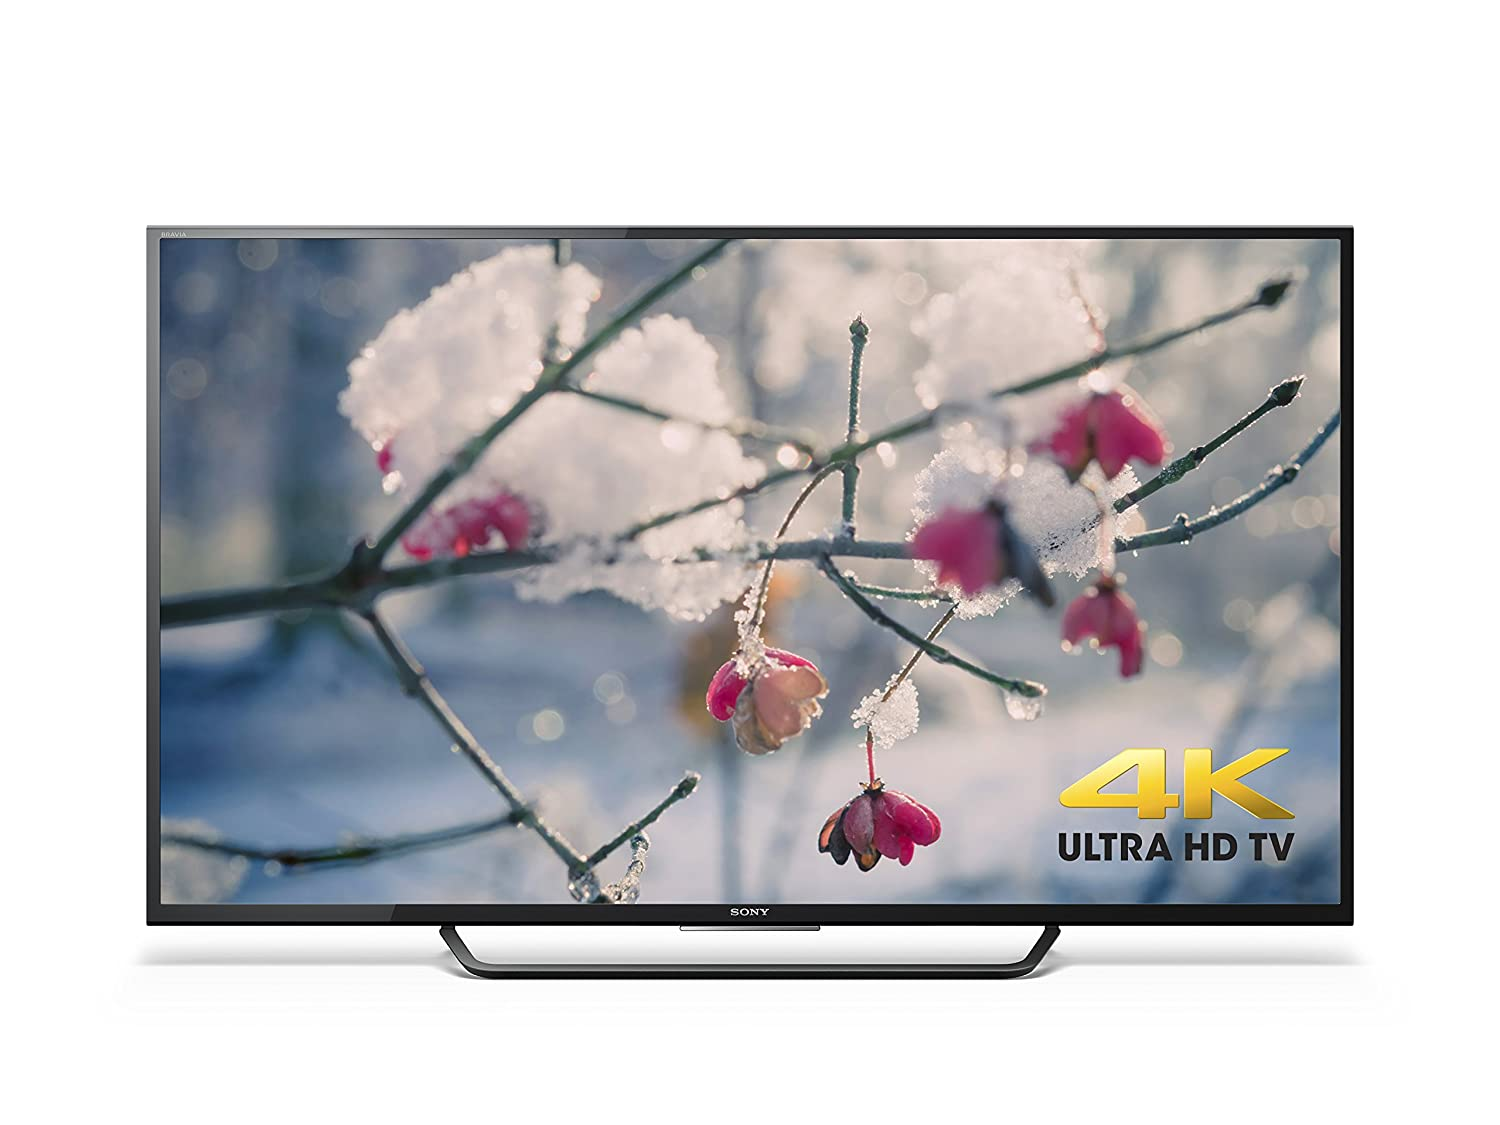 Sony XBR65X810C 65-Inch 4K Ultra HD Smart LED TV (2015 Model)